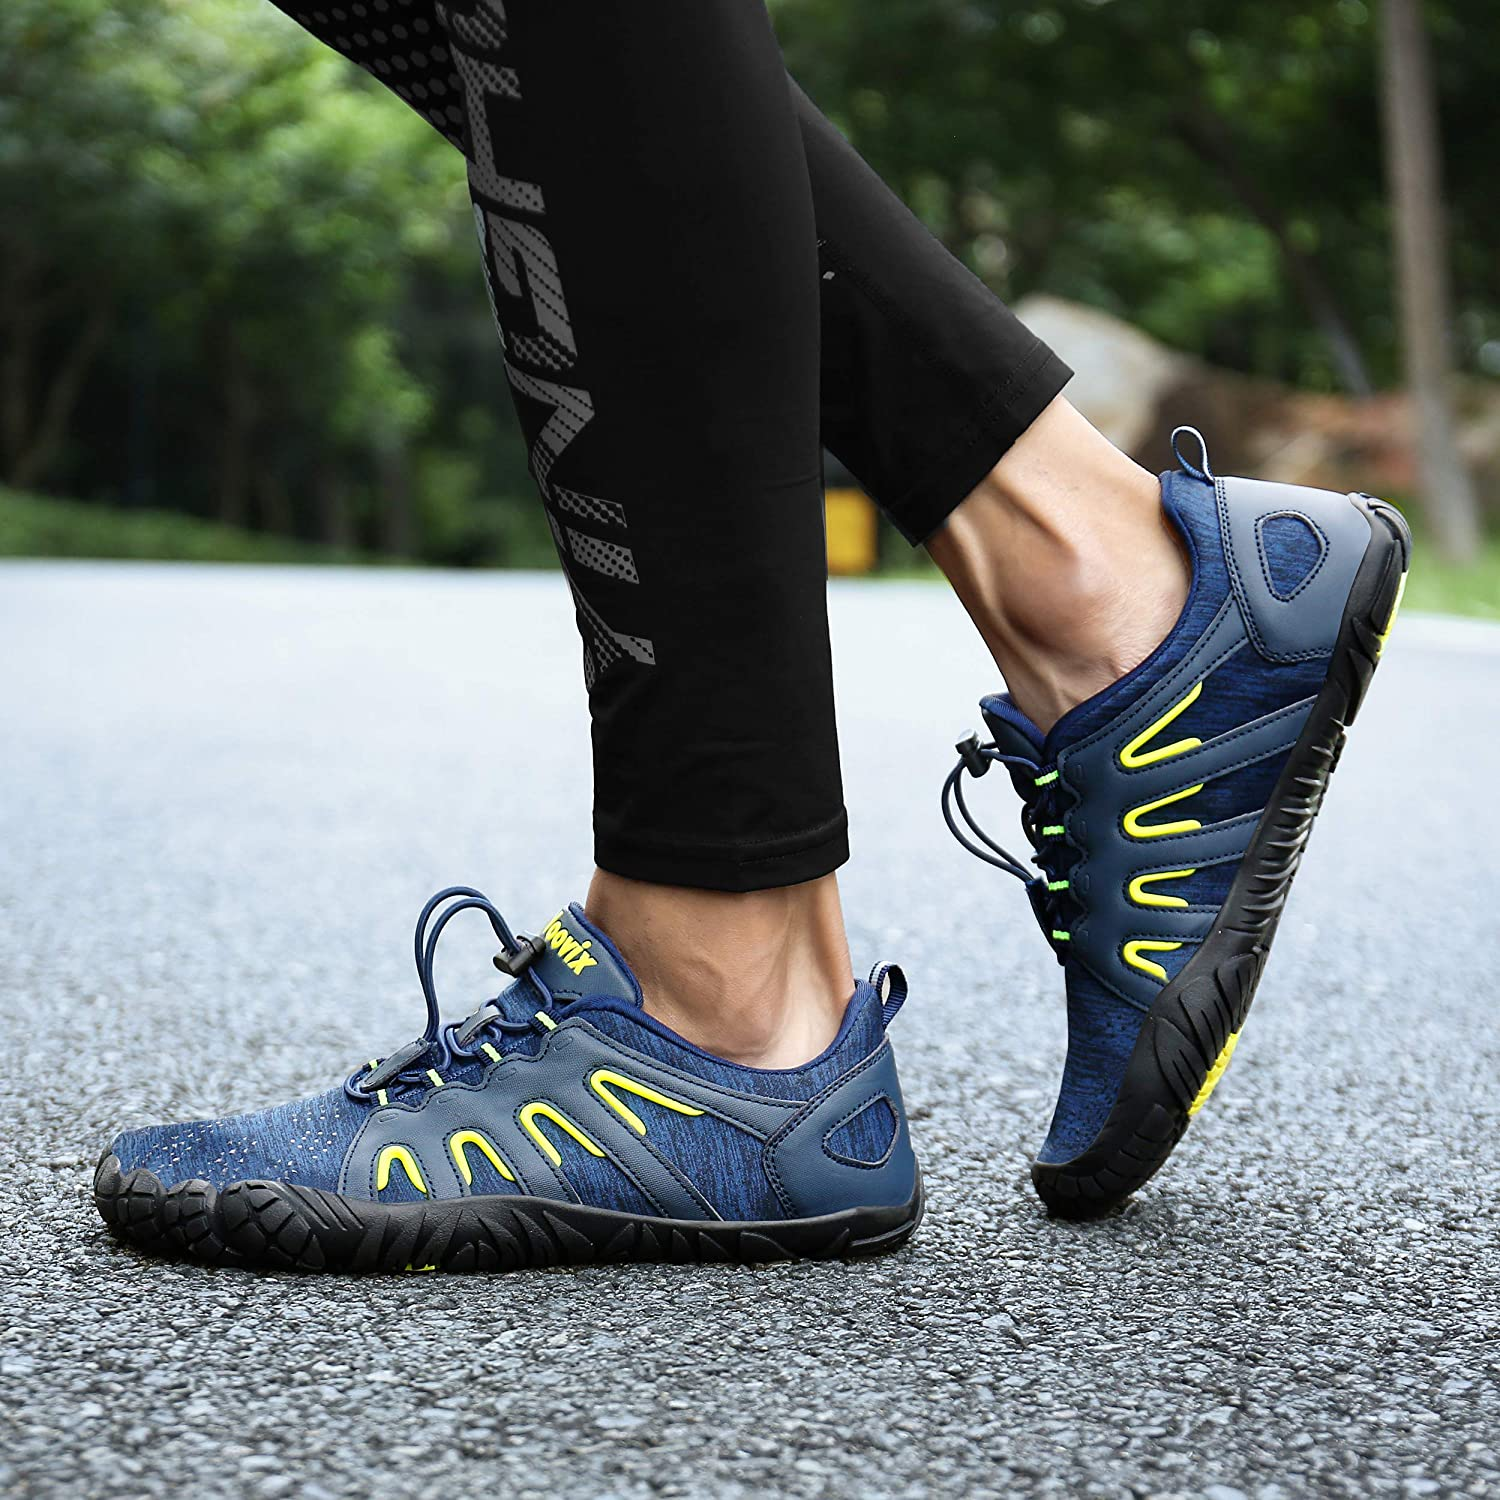 Voovix Mens Barefoot Shoes Athletic Trail Running Shoes Womens Outdoor  Walking Shoes for Hiking Cross Training Sports & Outdoors Exercise & Fitness